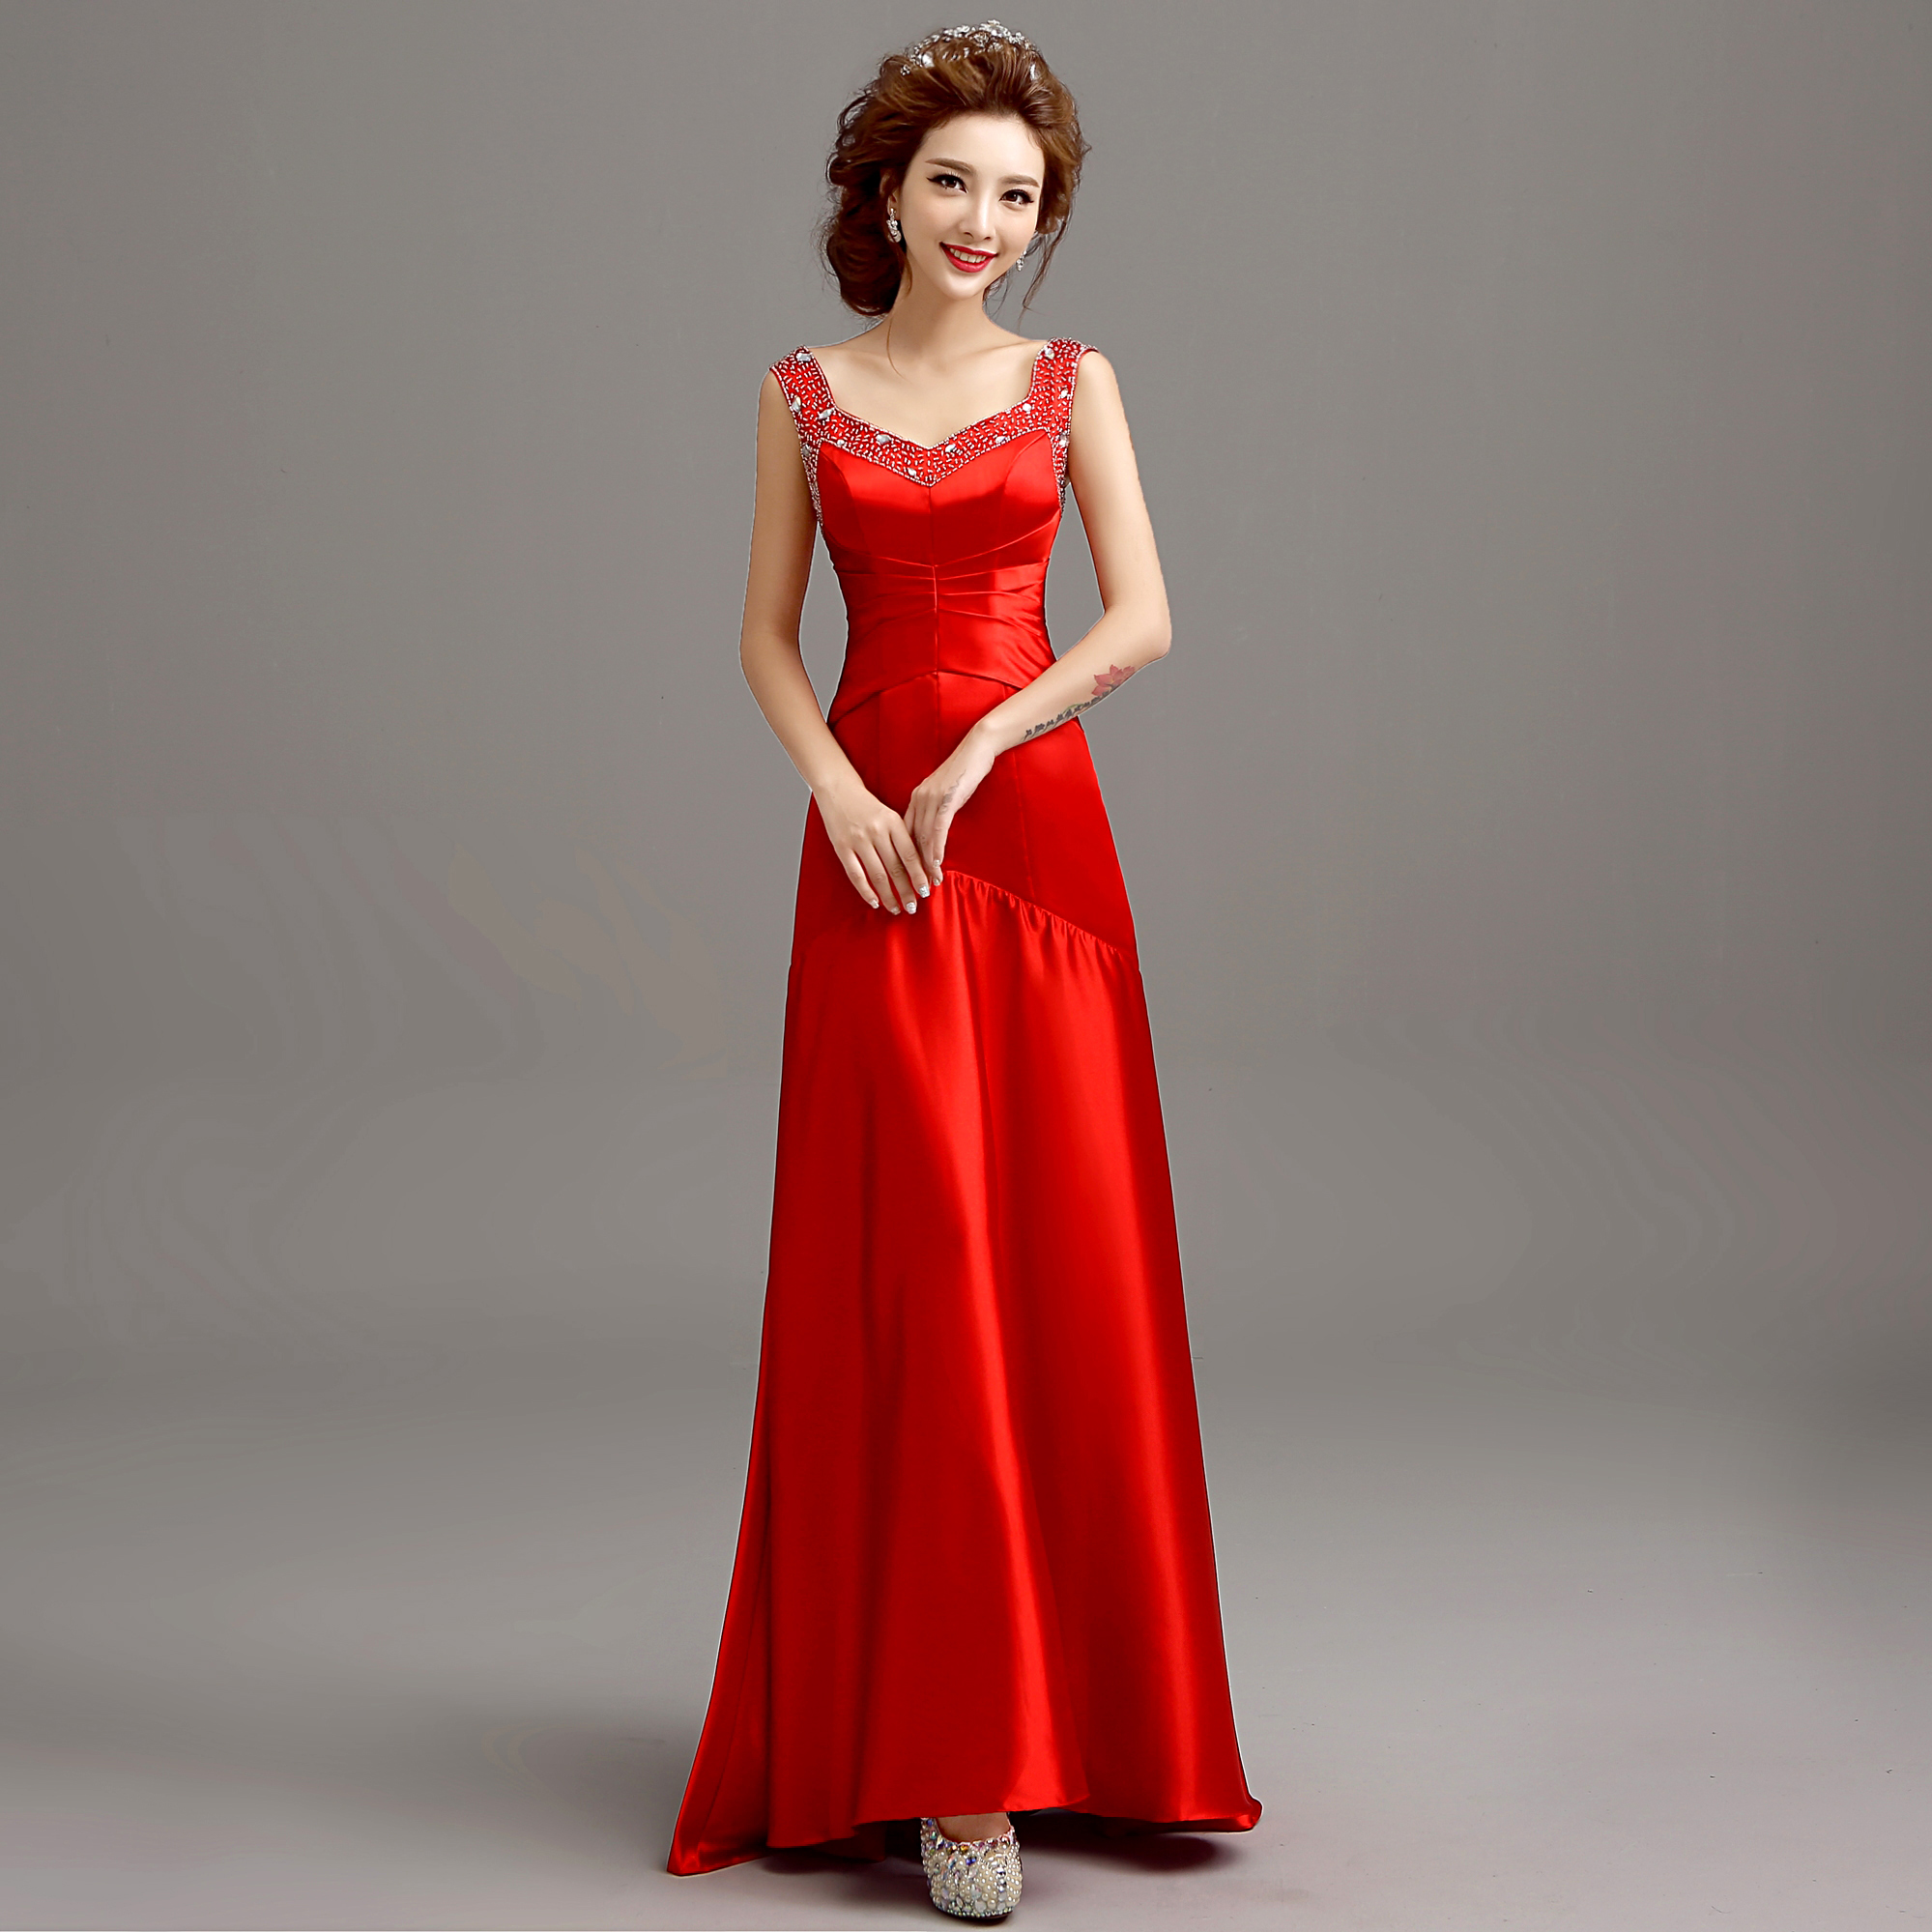 Z 2016 new arrival stock maternity plus size bridal gown evening z 2016 new arrival stock maternity plus size bridal gown evening dress red slim fish tail satin sexy long 311 in evening dresses from weddings events on ombrellifo Image collections